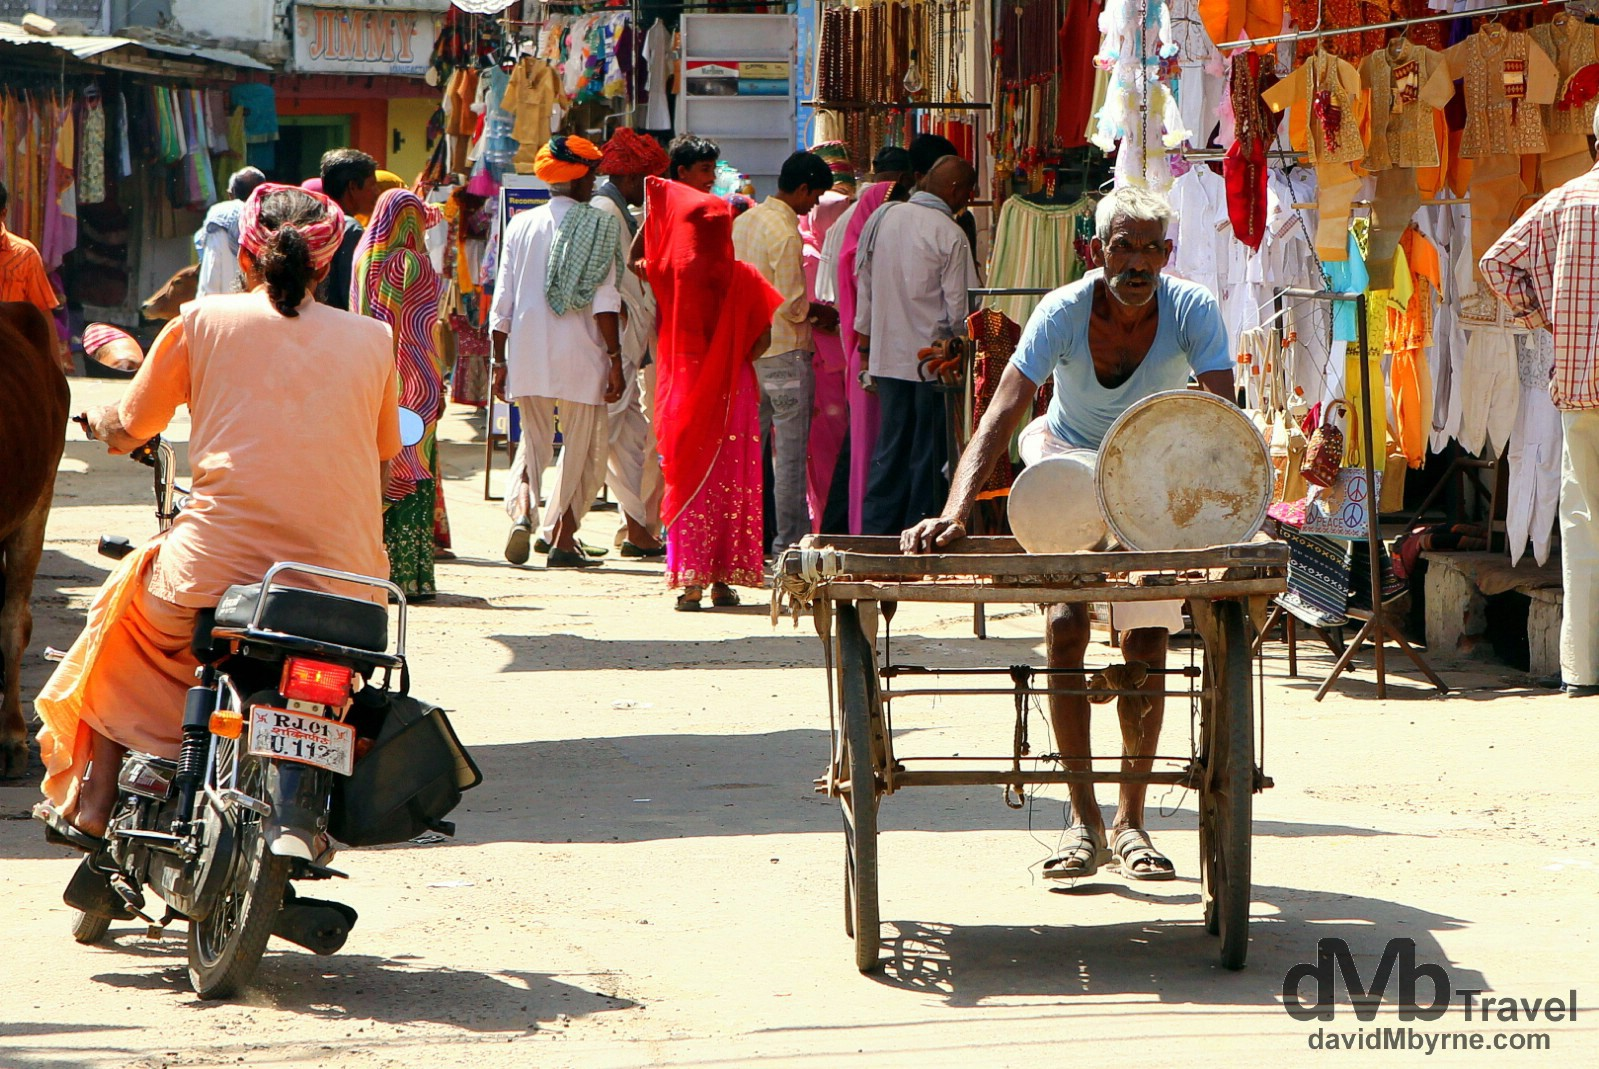 On the streets of Pushkar, Rajasthan, India. October 3rd 2012.